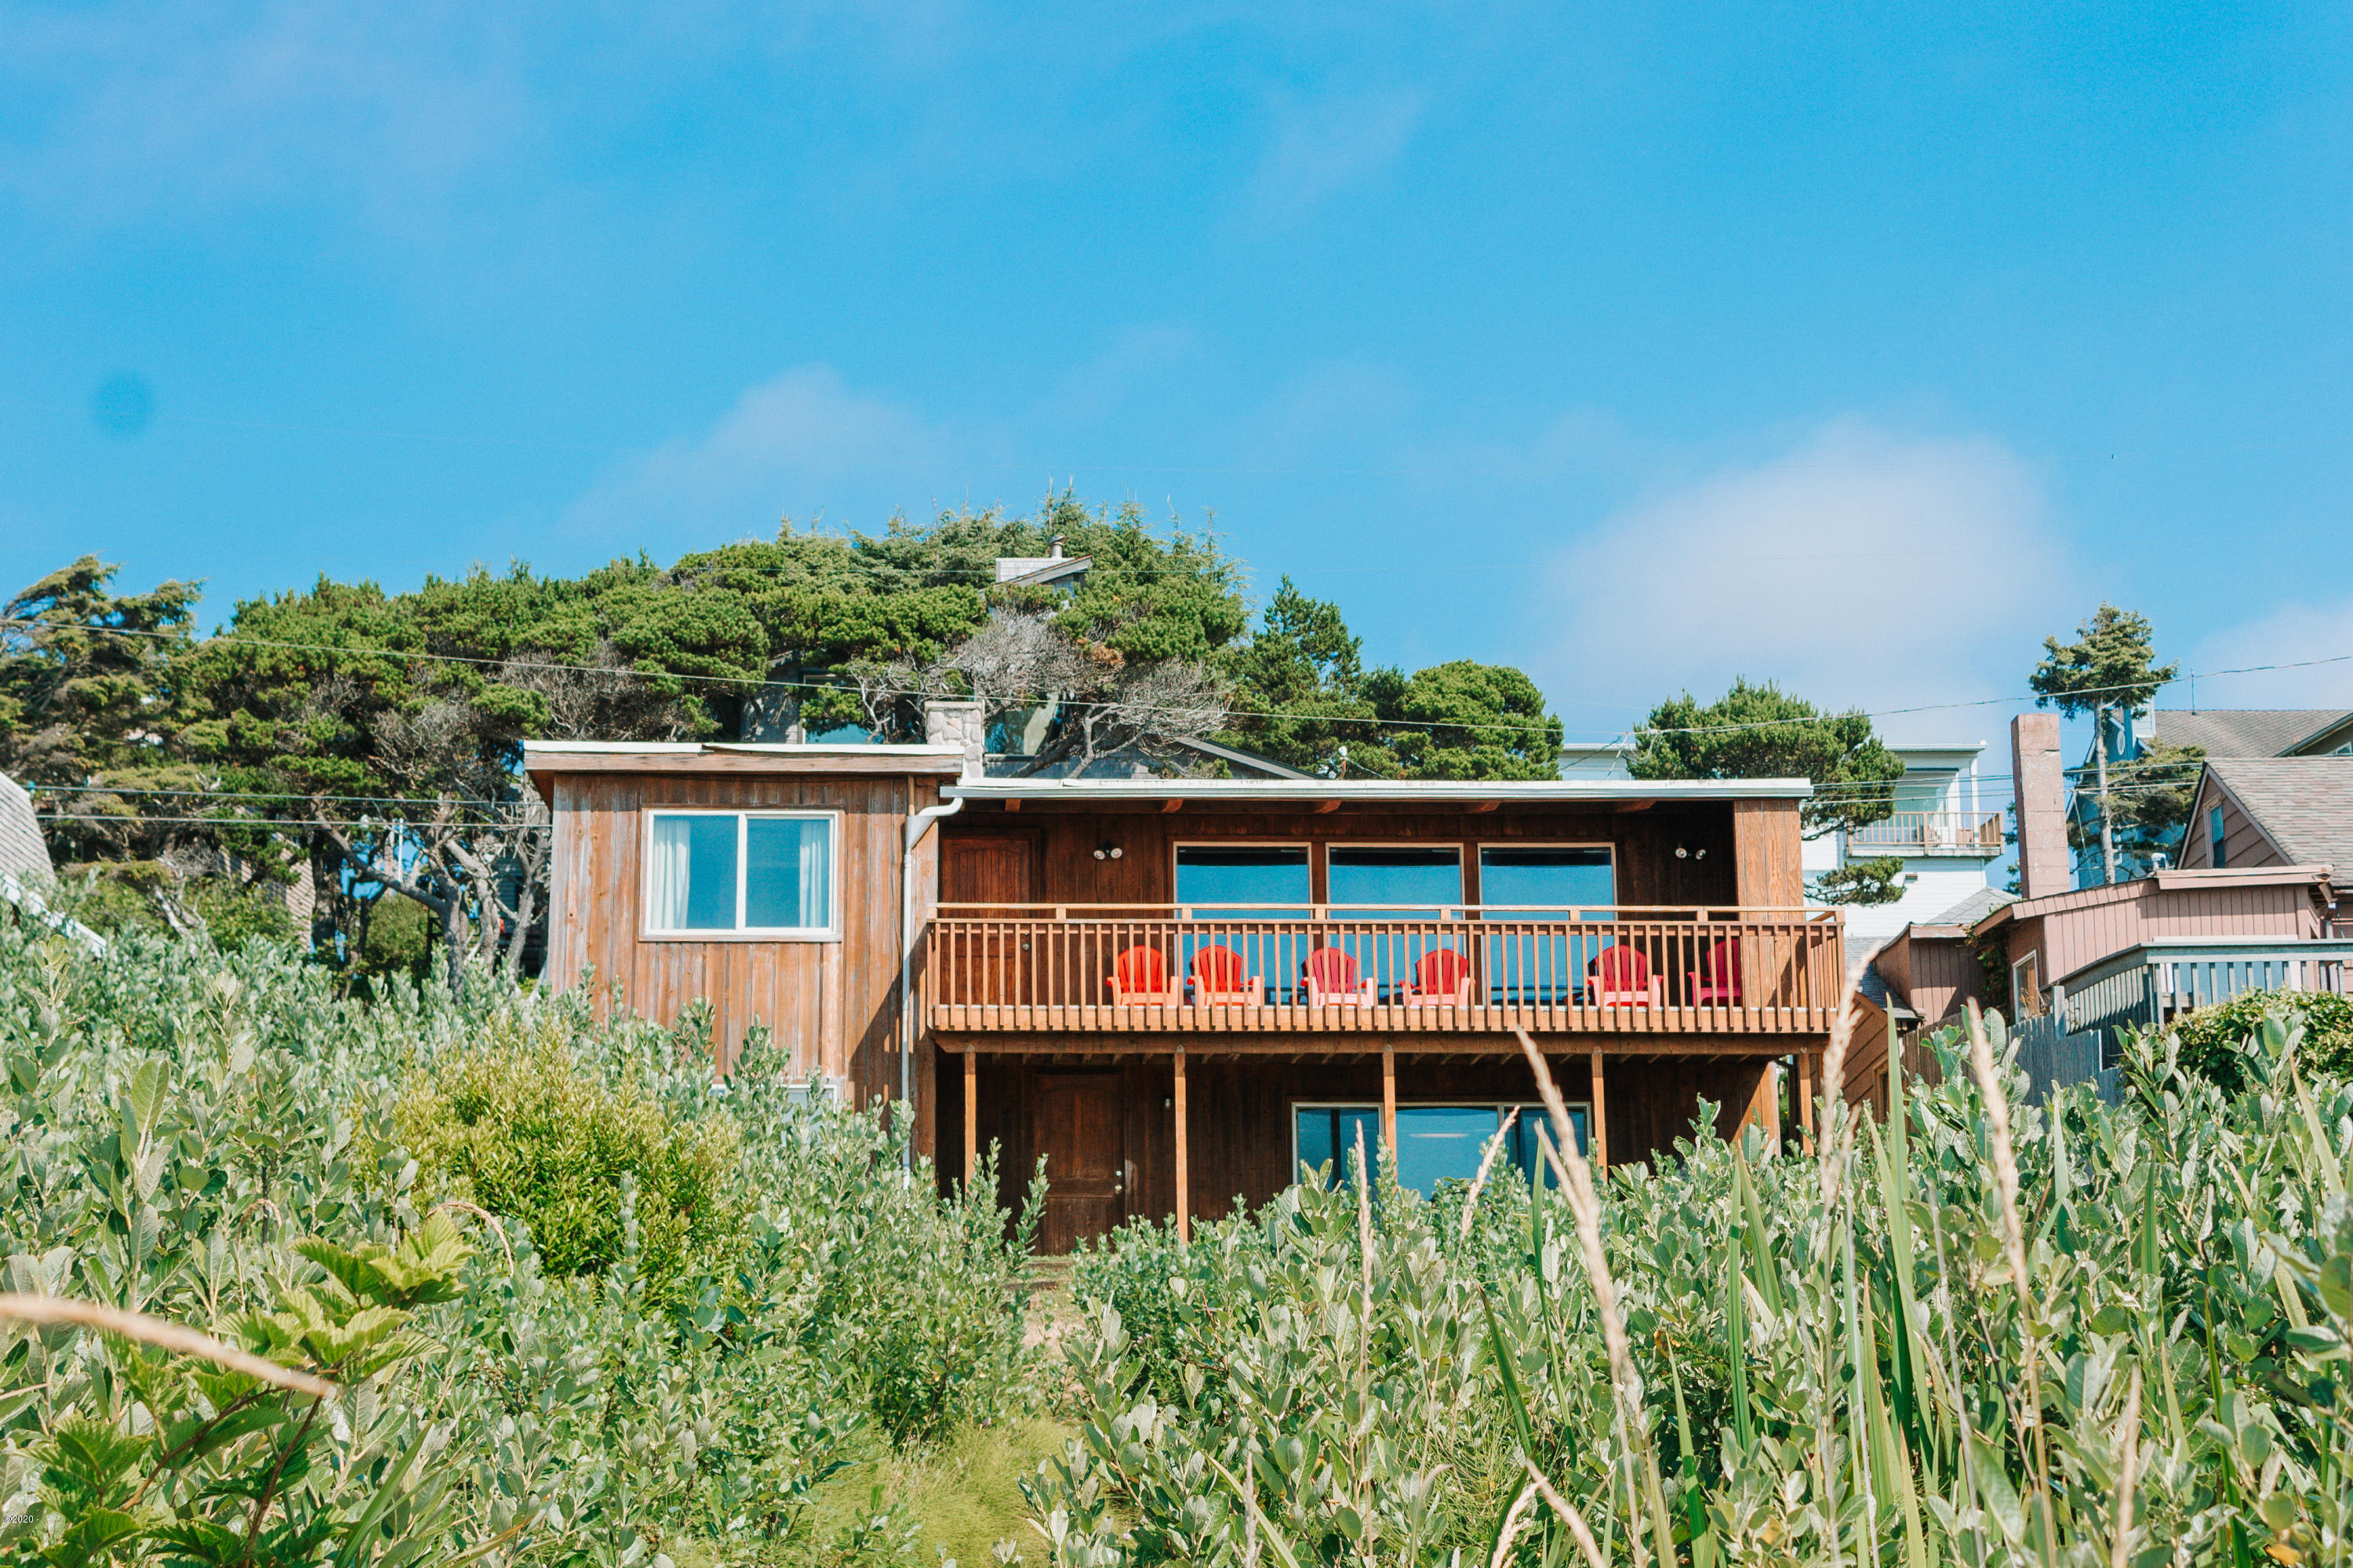 3935 Lincoln Ave, Depoe Bay, OR 97341